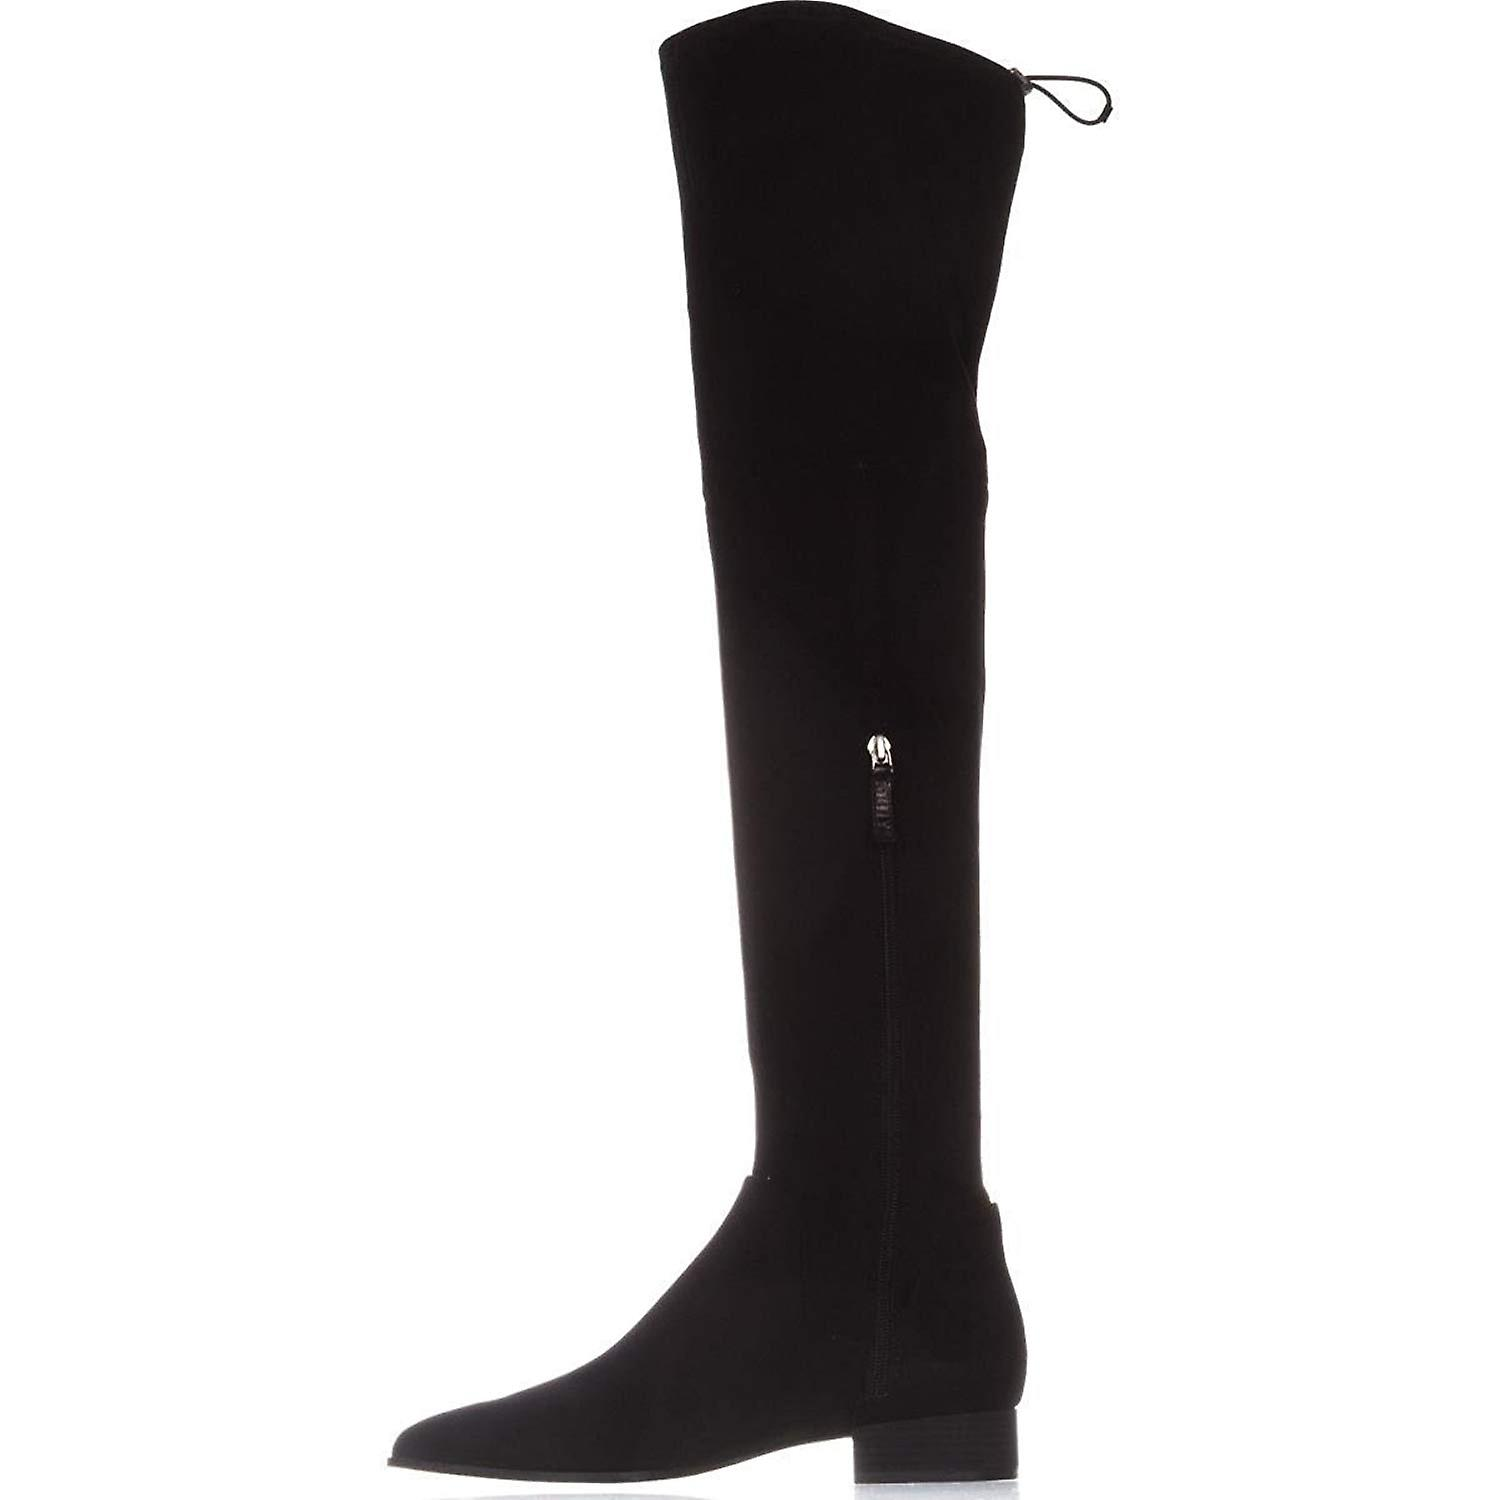 DKNY Womens Tyra Pointed Toe Over Knee Fashion Boots ulkrw